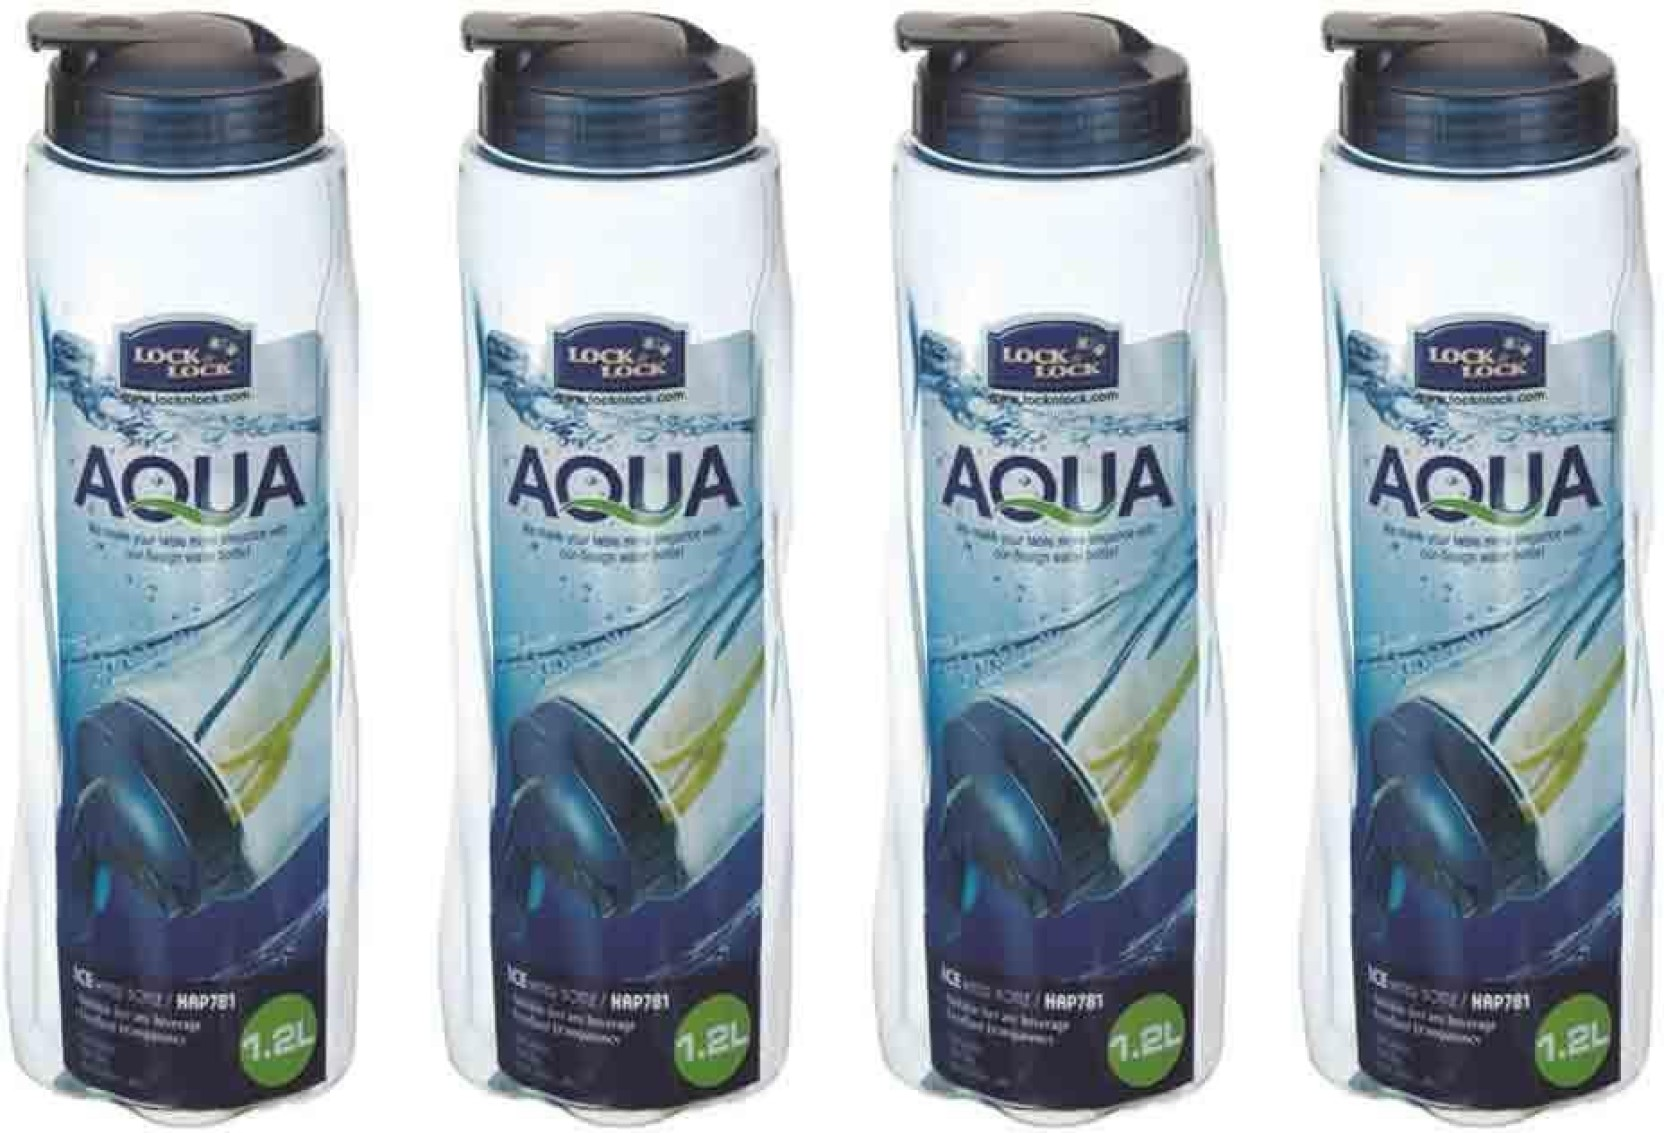 Lock Aqua Easy Grip Water 1200 Ml Bottle Buy Locklock One Touch Food Container 690ml With Mixer Add To Cart